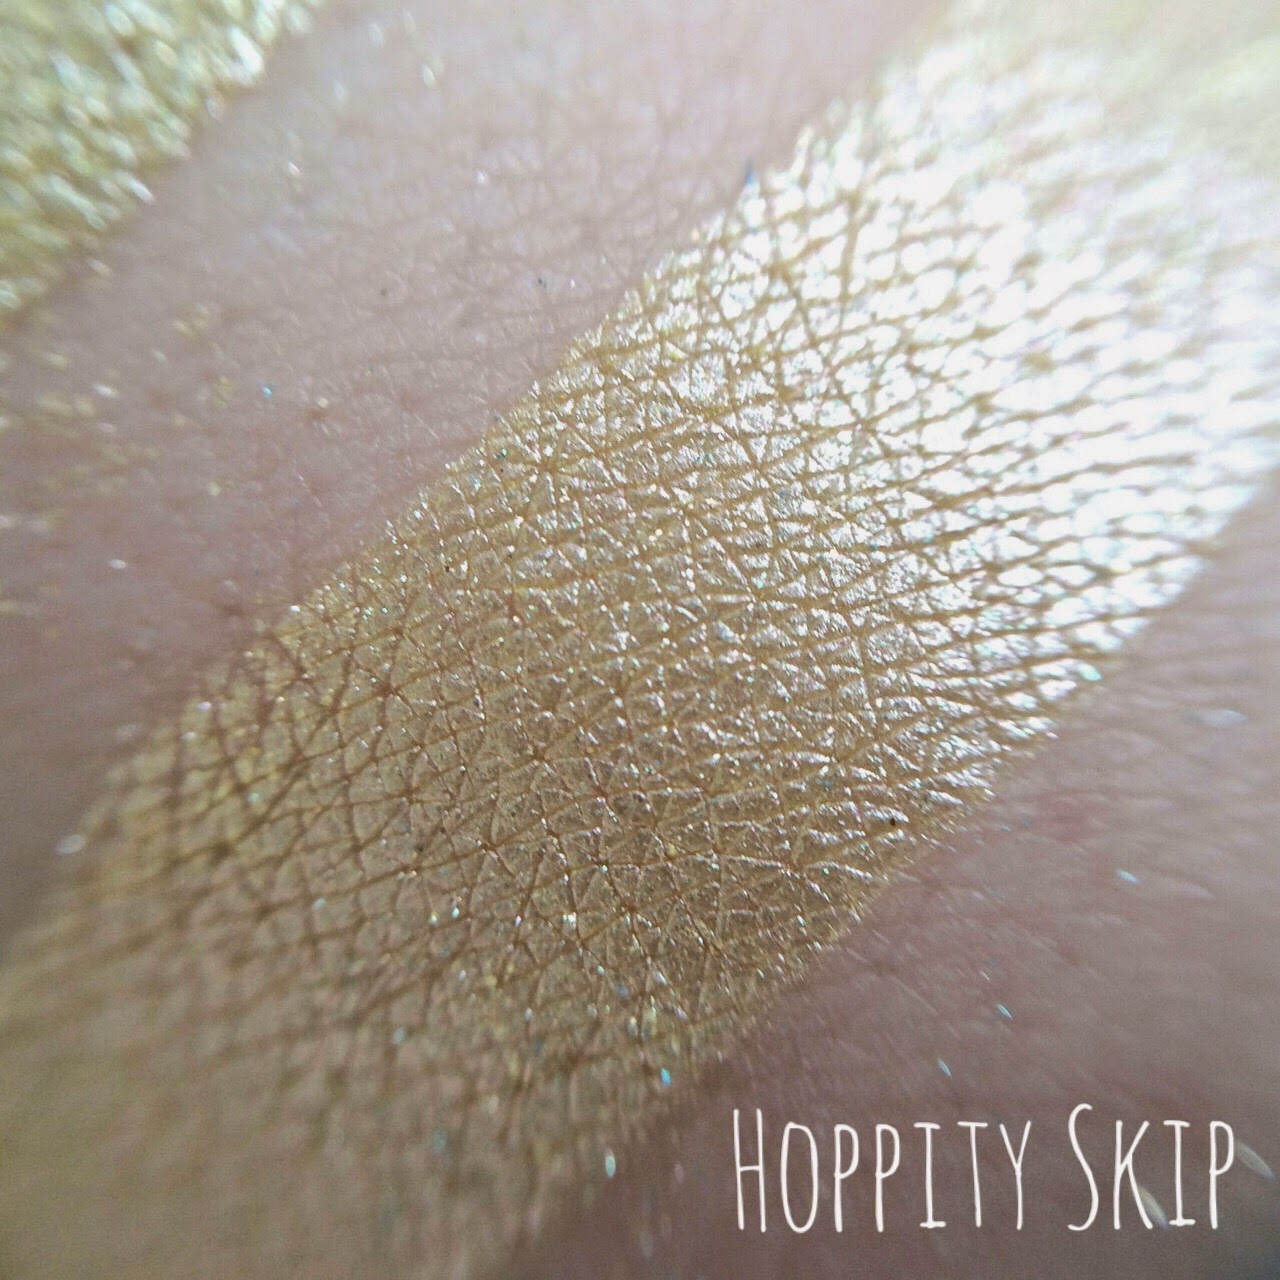 Hoppity Skip Terry Pratchett Inspired makeup